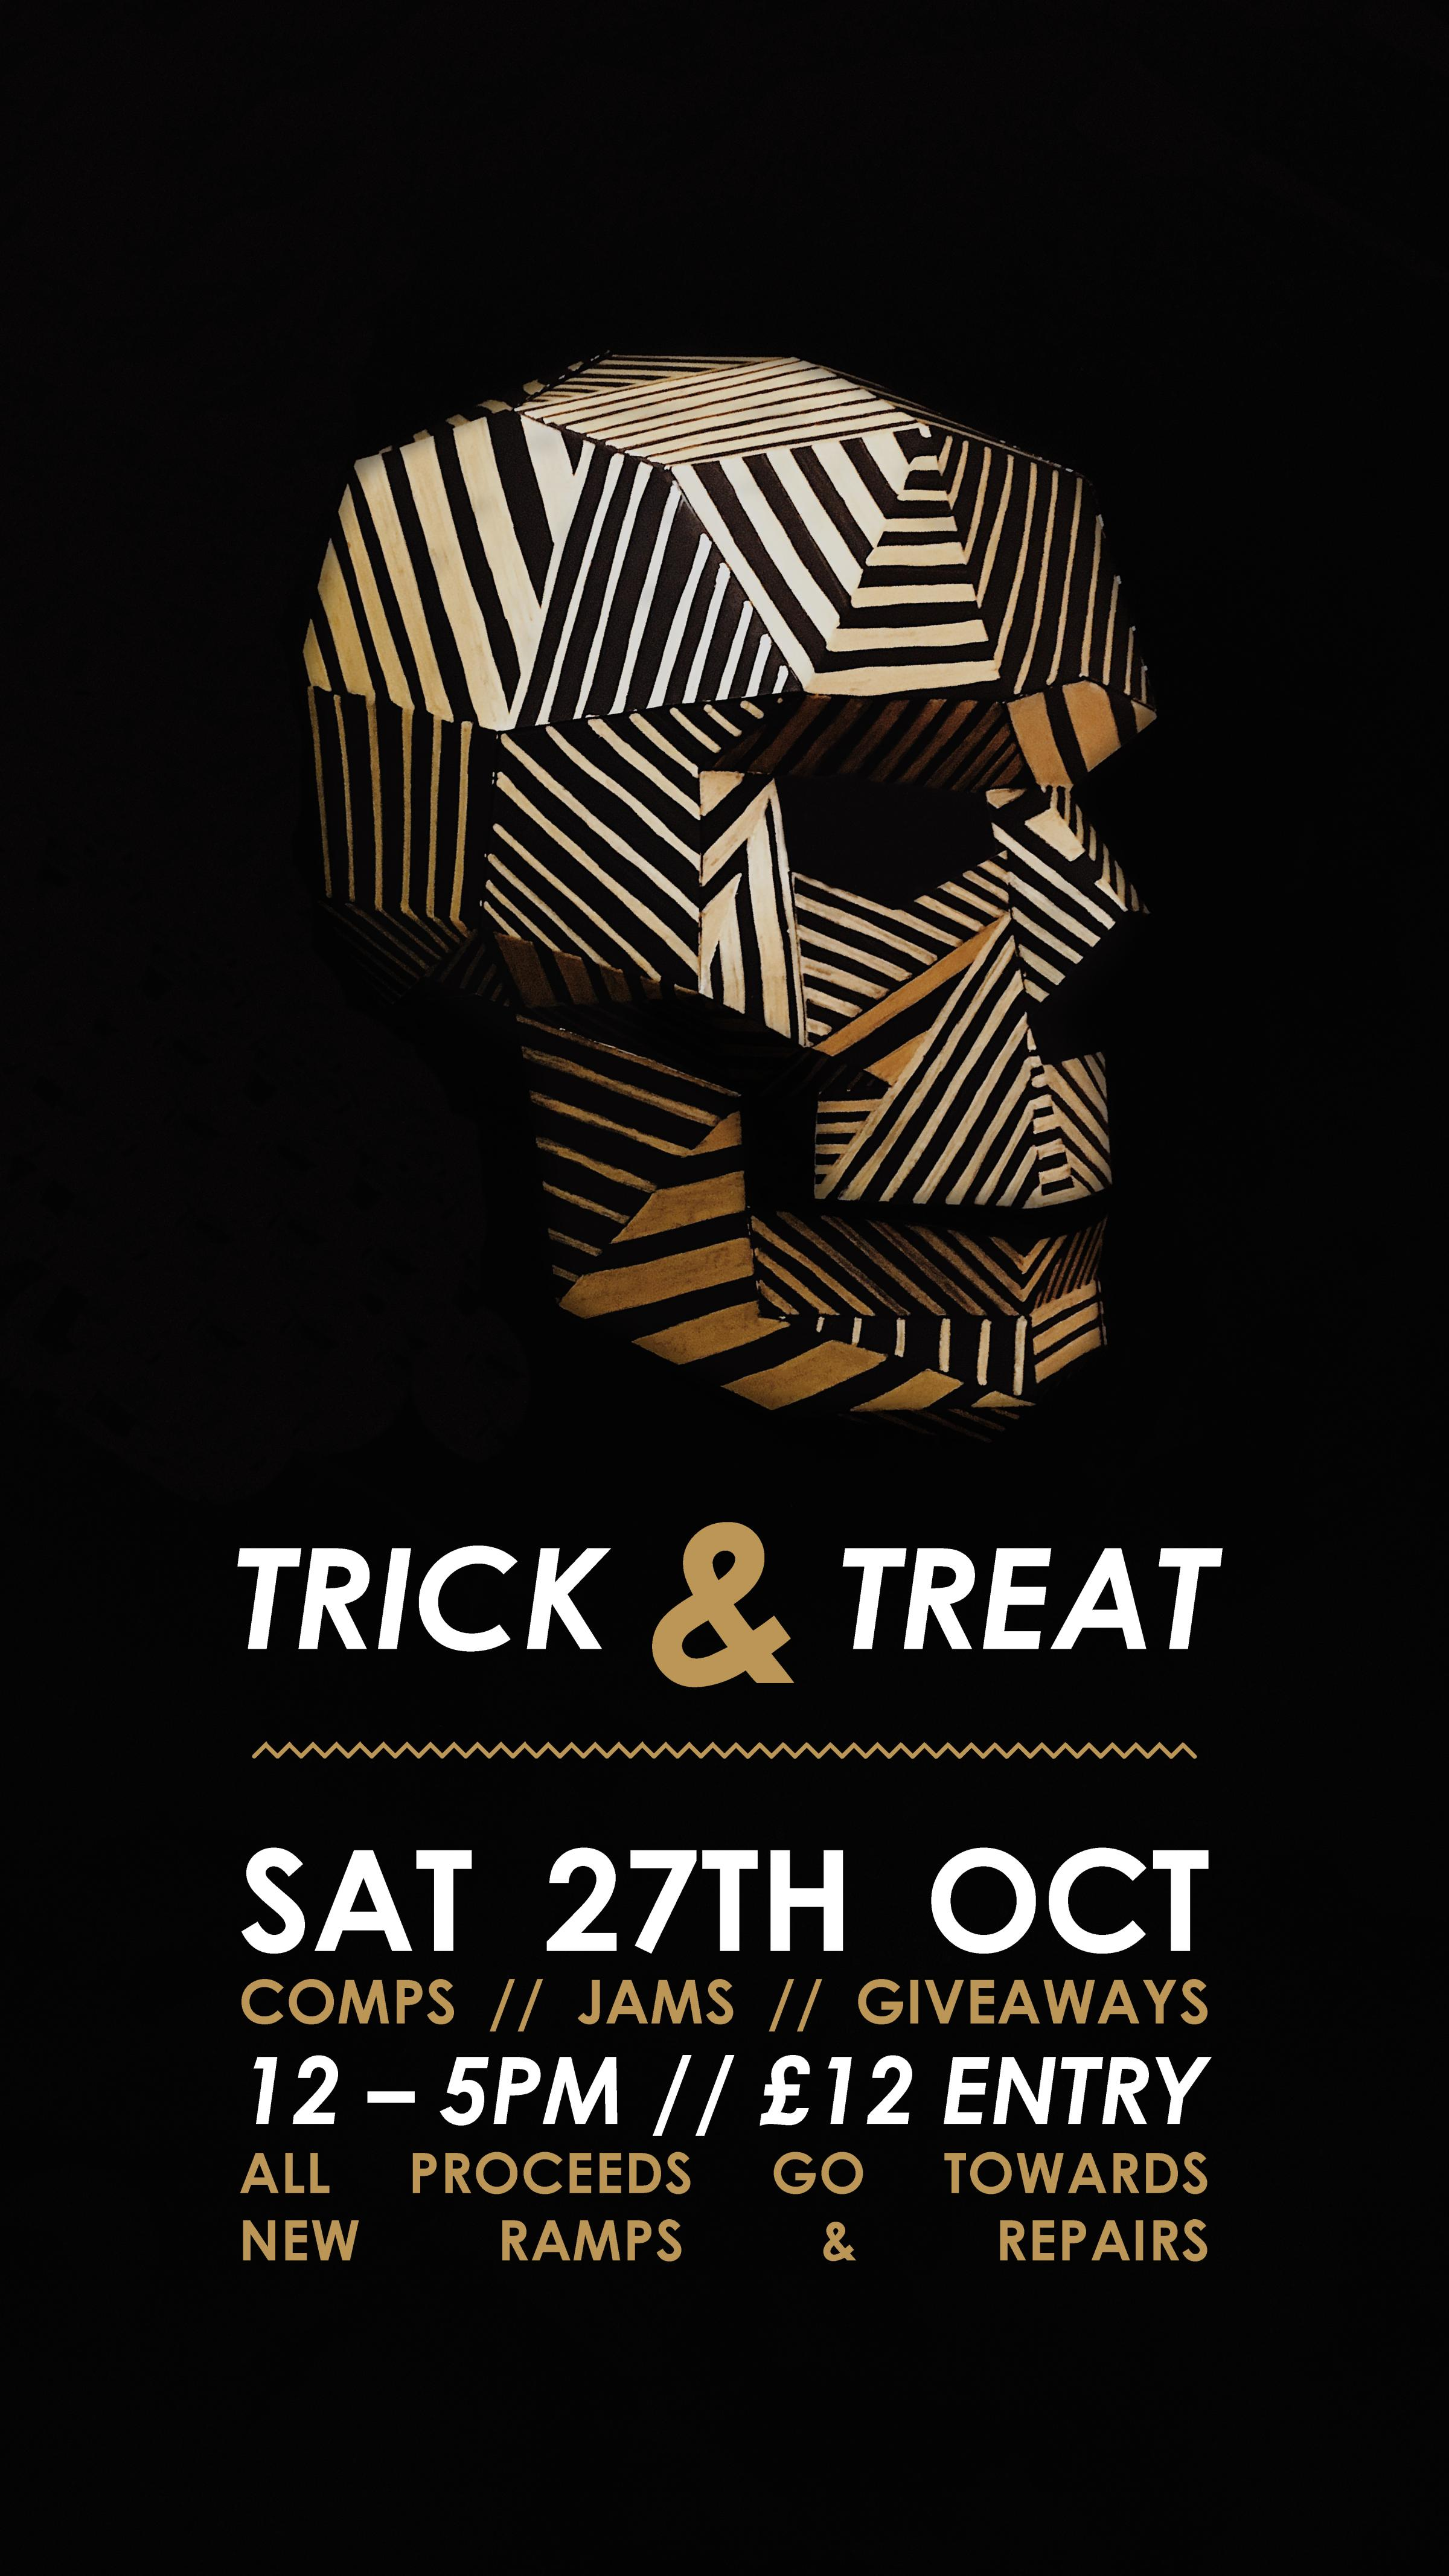 TRICK & TREAT @ THE FRONT SKATEPARK